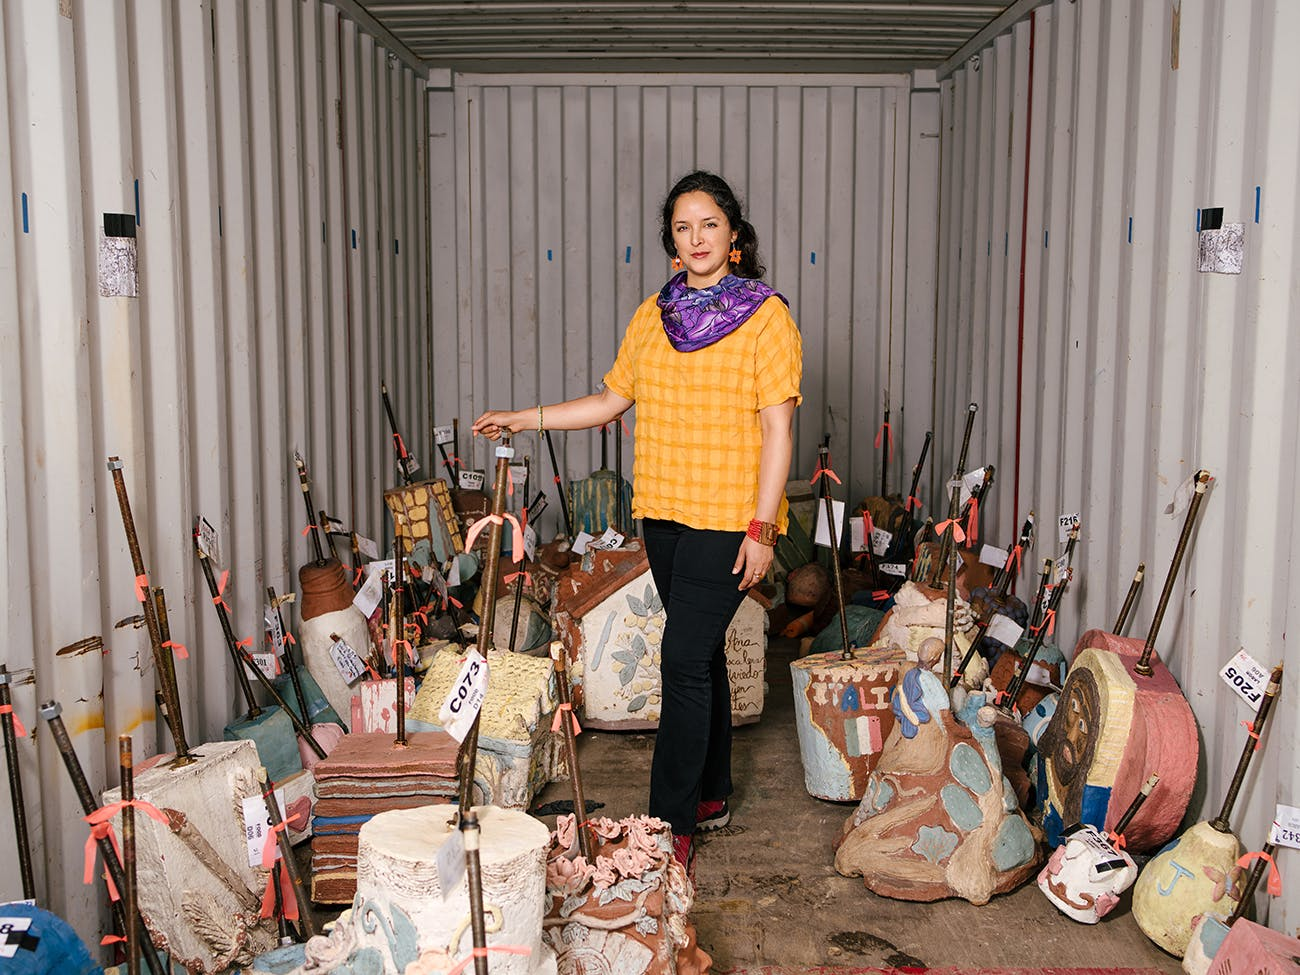 Cabrera in a storage unit containing sculptures that are to be hung.